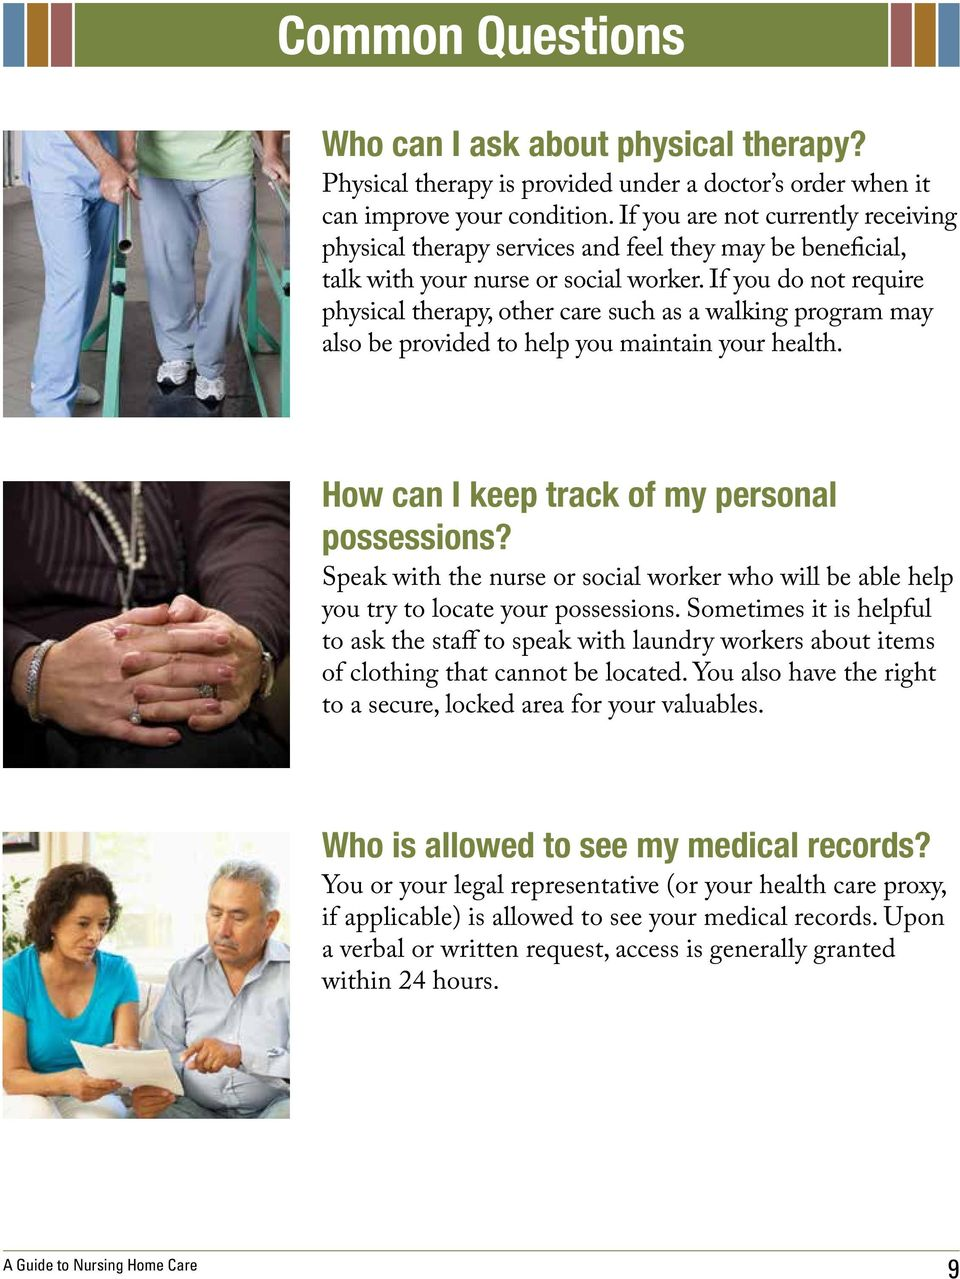 If you do not require physical therapy, other care such as a walking program may also be provided to help you maintain your health. How can I keep track of my personal possessions?